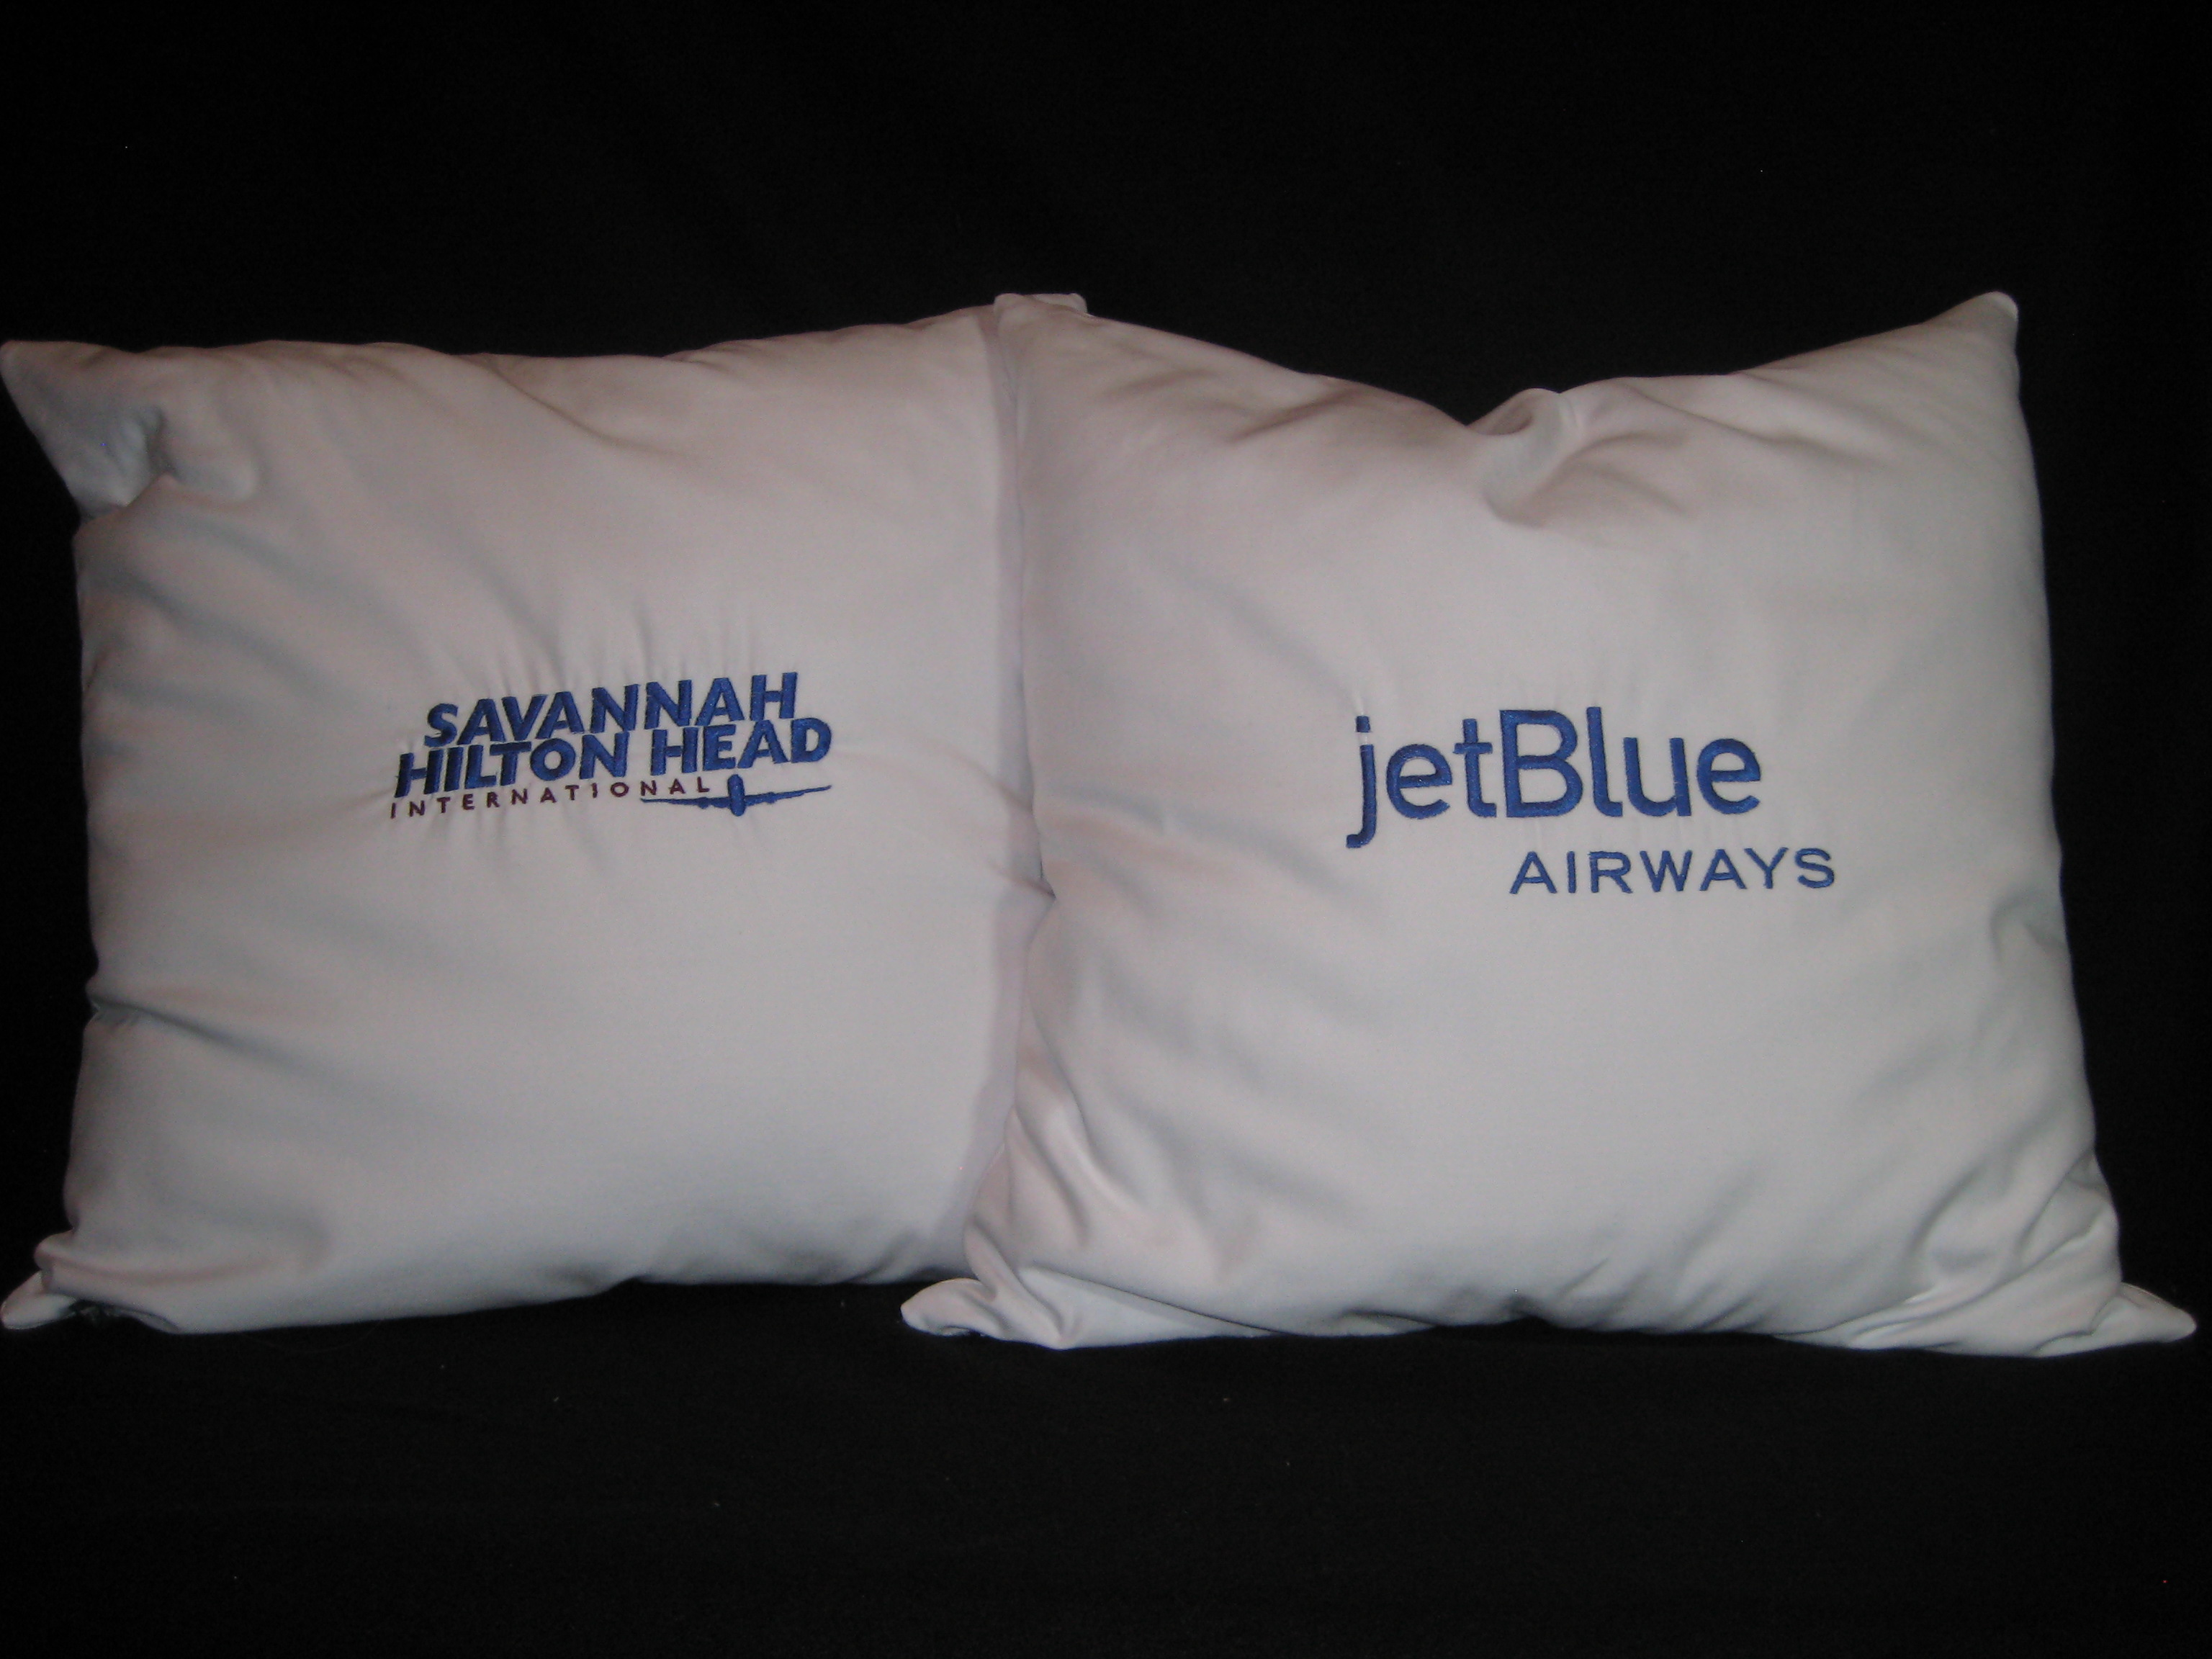 Corporate pillows